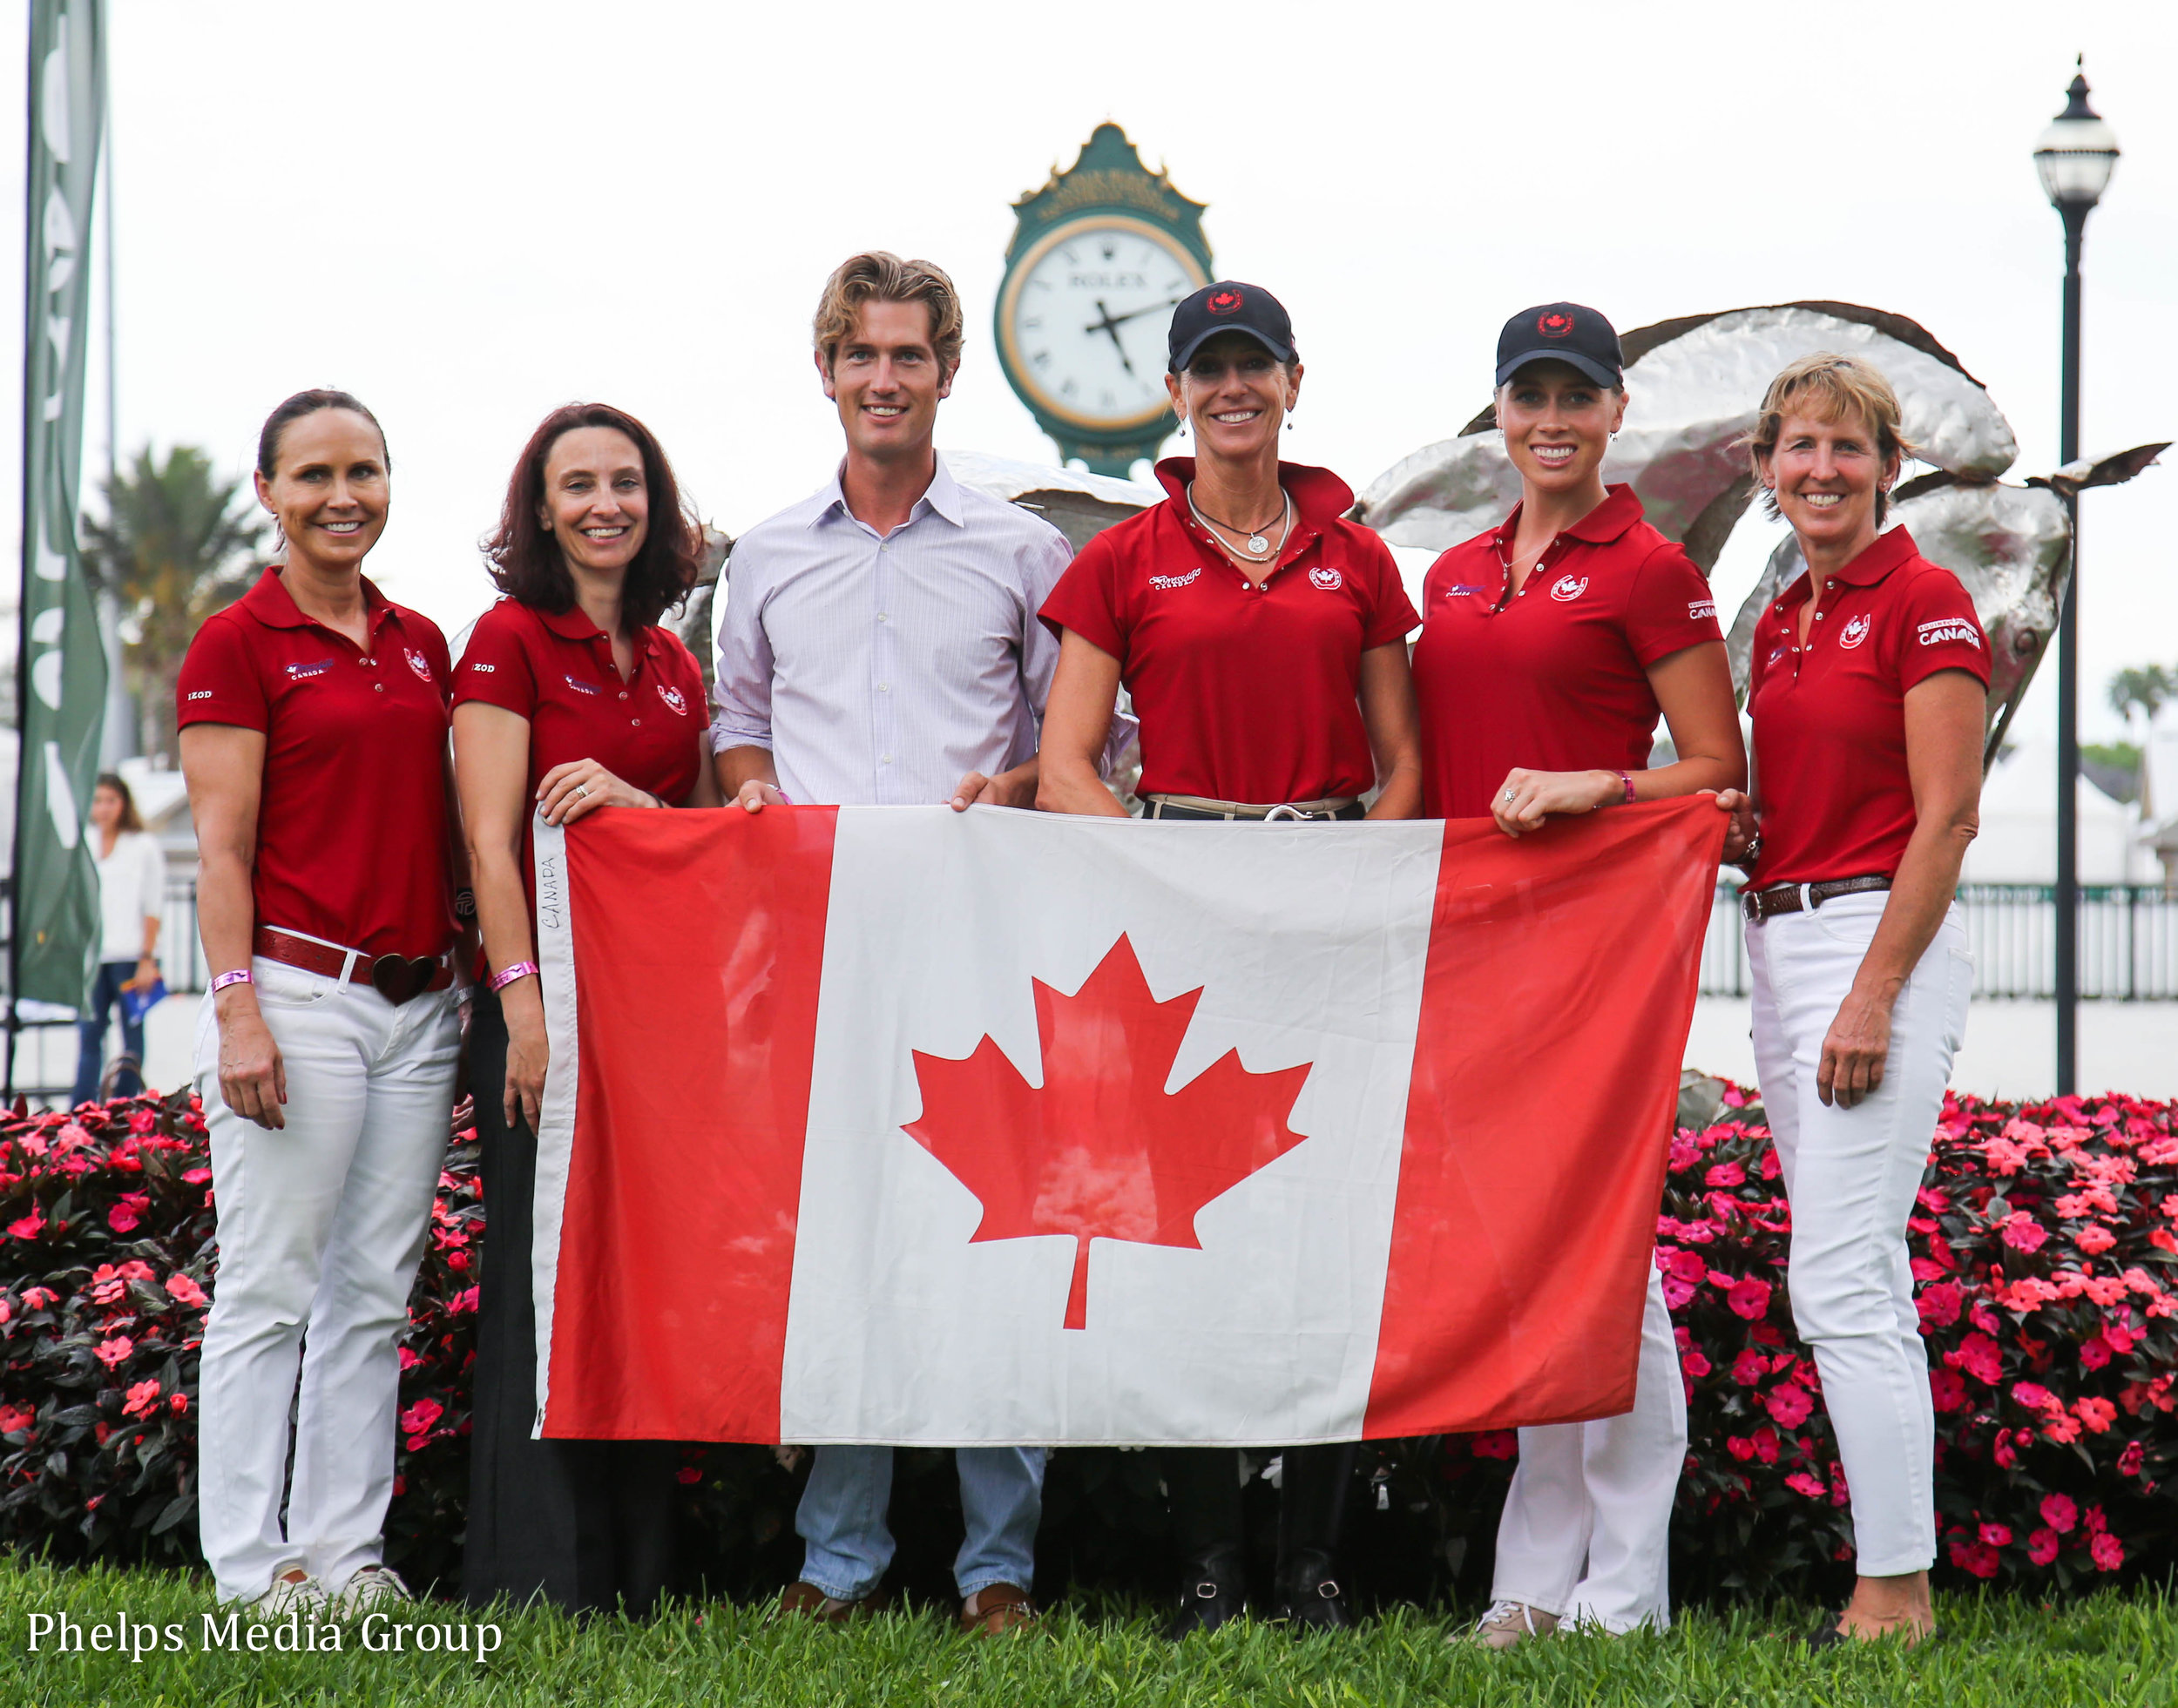 Canadian competitors at the Nations Cup: Jill Irving, Chef-in-Training/ Assistant Chef Alison Martin, Chris von Martels, Shannon Dueck, Megan Lane and Diane Creech. Photo by Mary Adelaide Brackenridge.